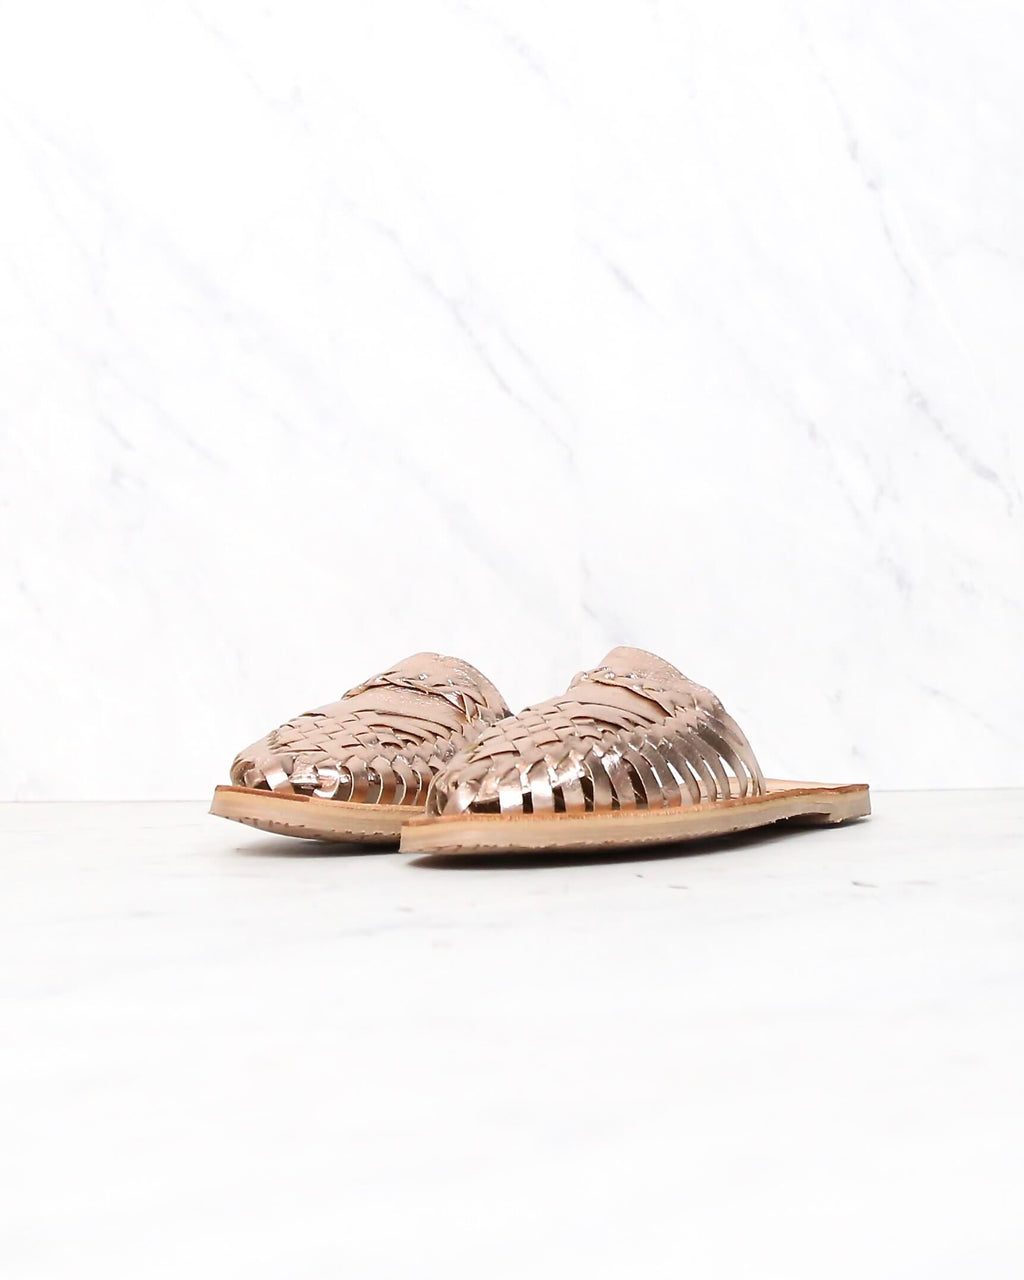 sbicca - baines huarache women's flat sandal - rose gold